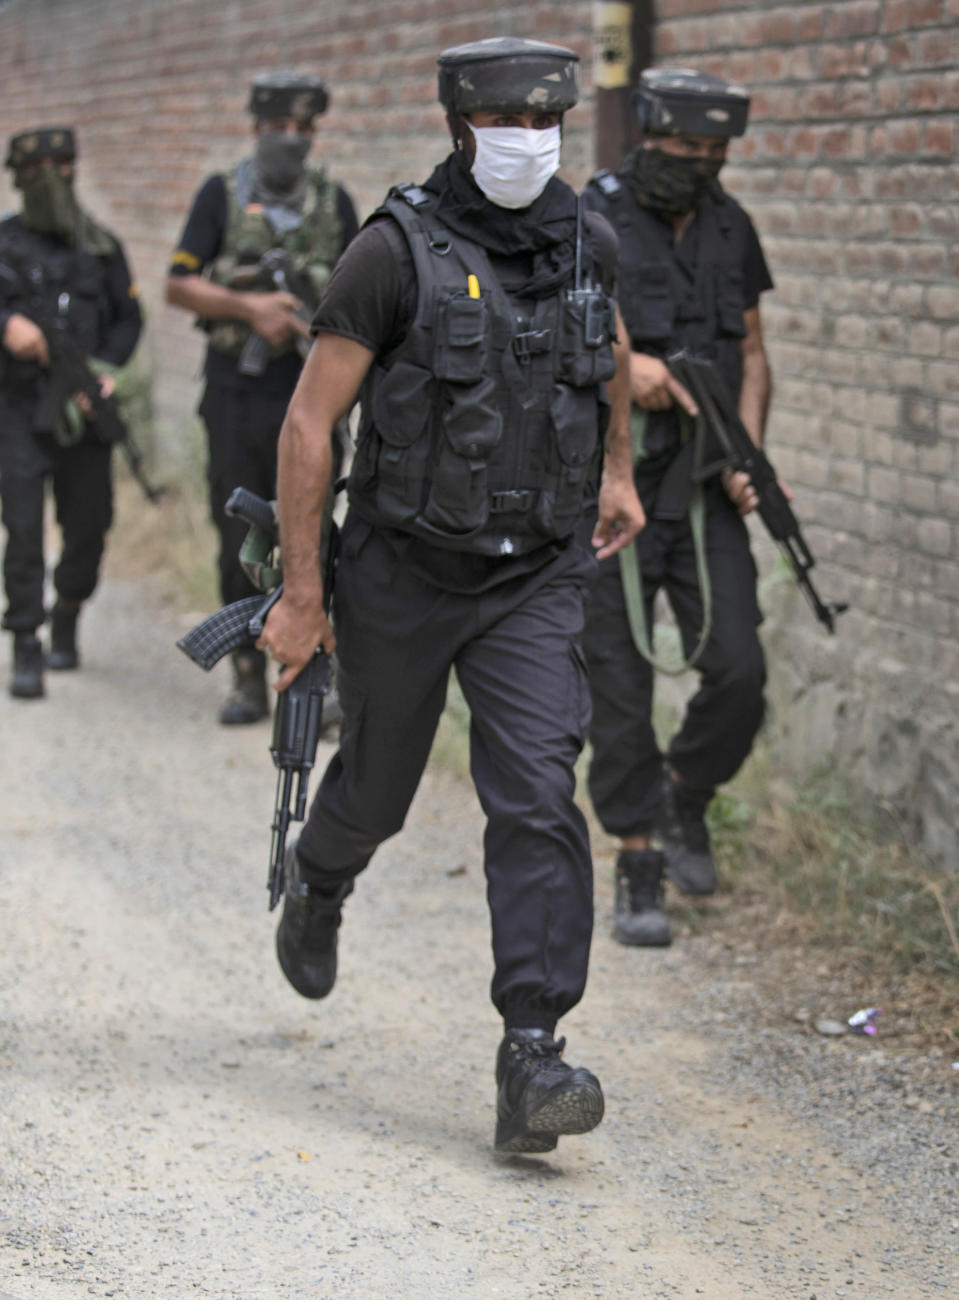 Members of Special Operations Group (SOG) of Jammu and Kashmir police arrive at the site of an attack on policemen on the outskirts of Srinagar, Indian controlled Kashmir, Friday, Aug. 14, 2020. Anti-India rebels in Indian-controlled Kashmir Friday attacked a police party in the disputed region's main city, killing two police officials and injuring another, police said. (AP Photo/Mukhtar Khan)